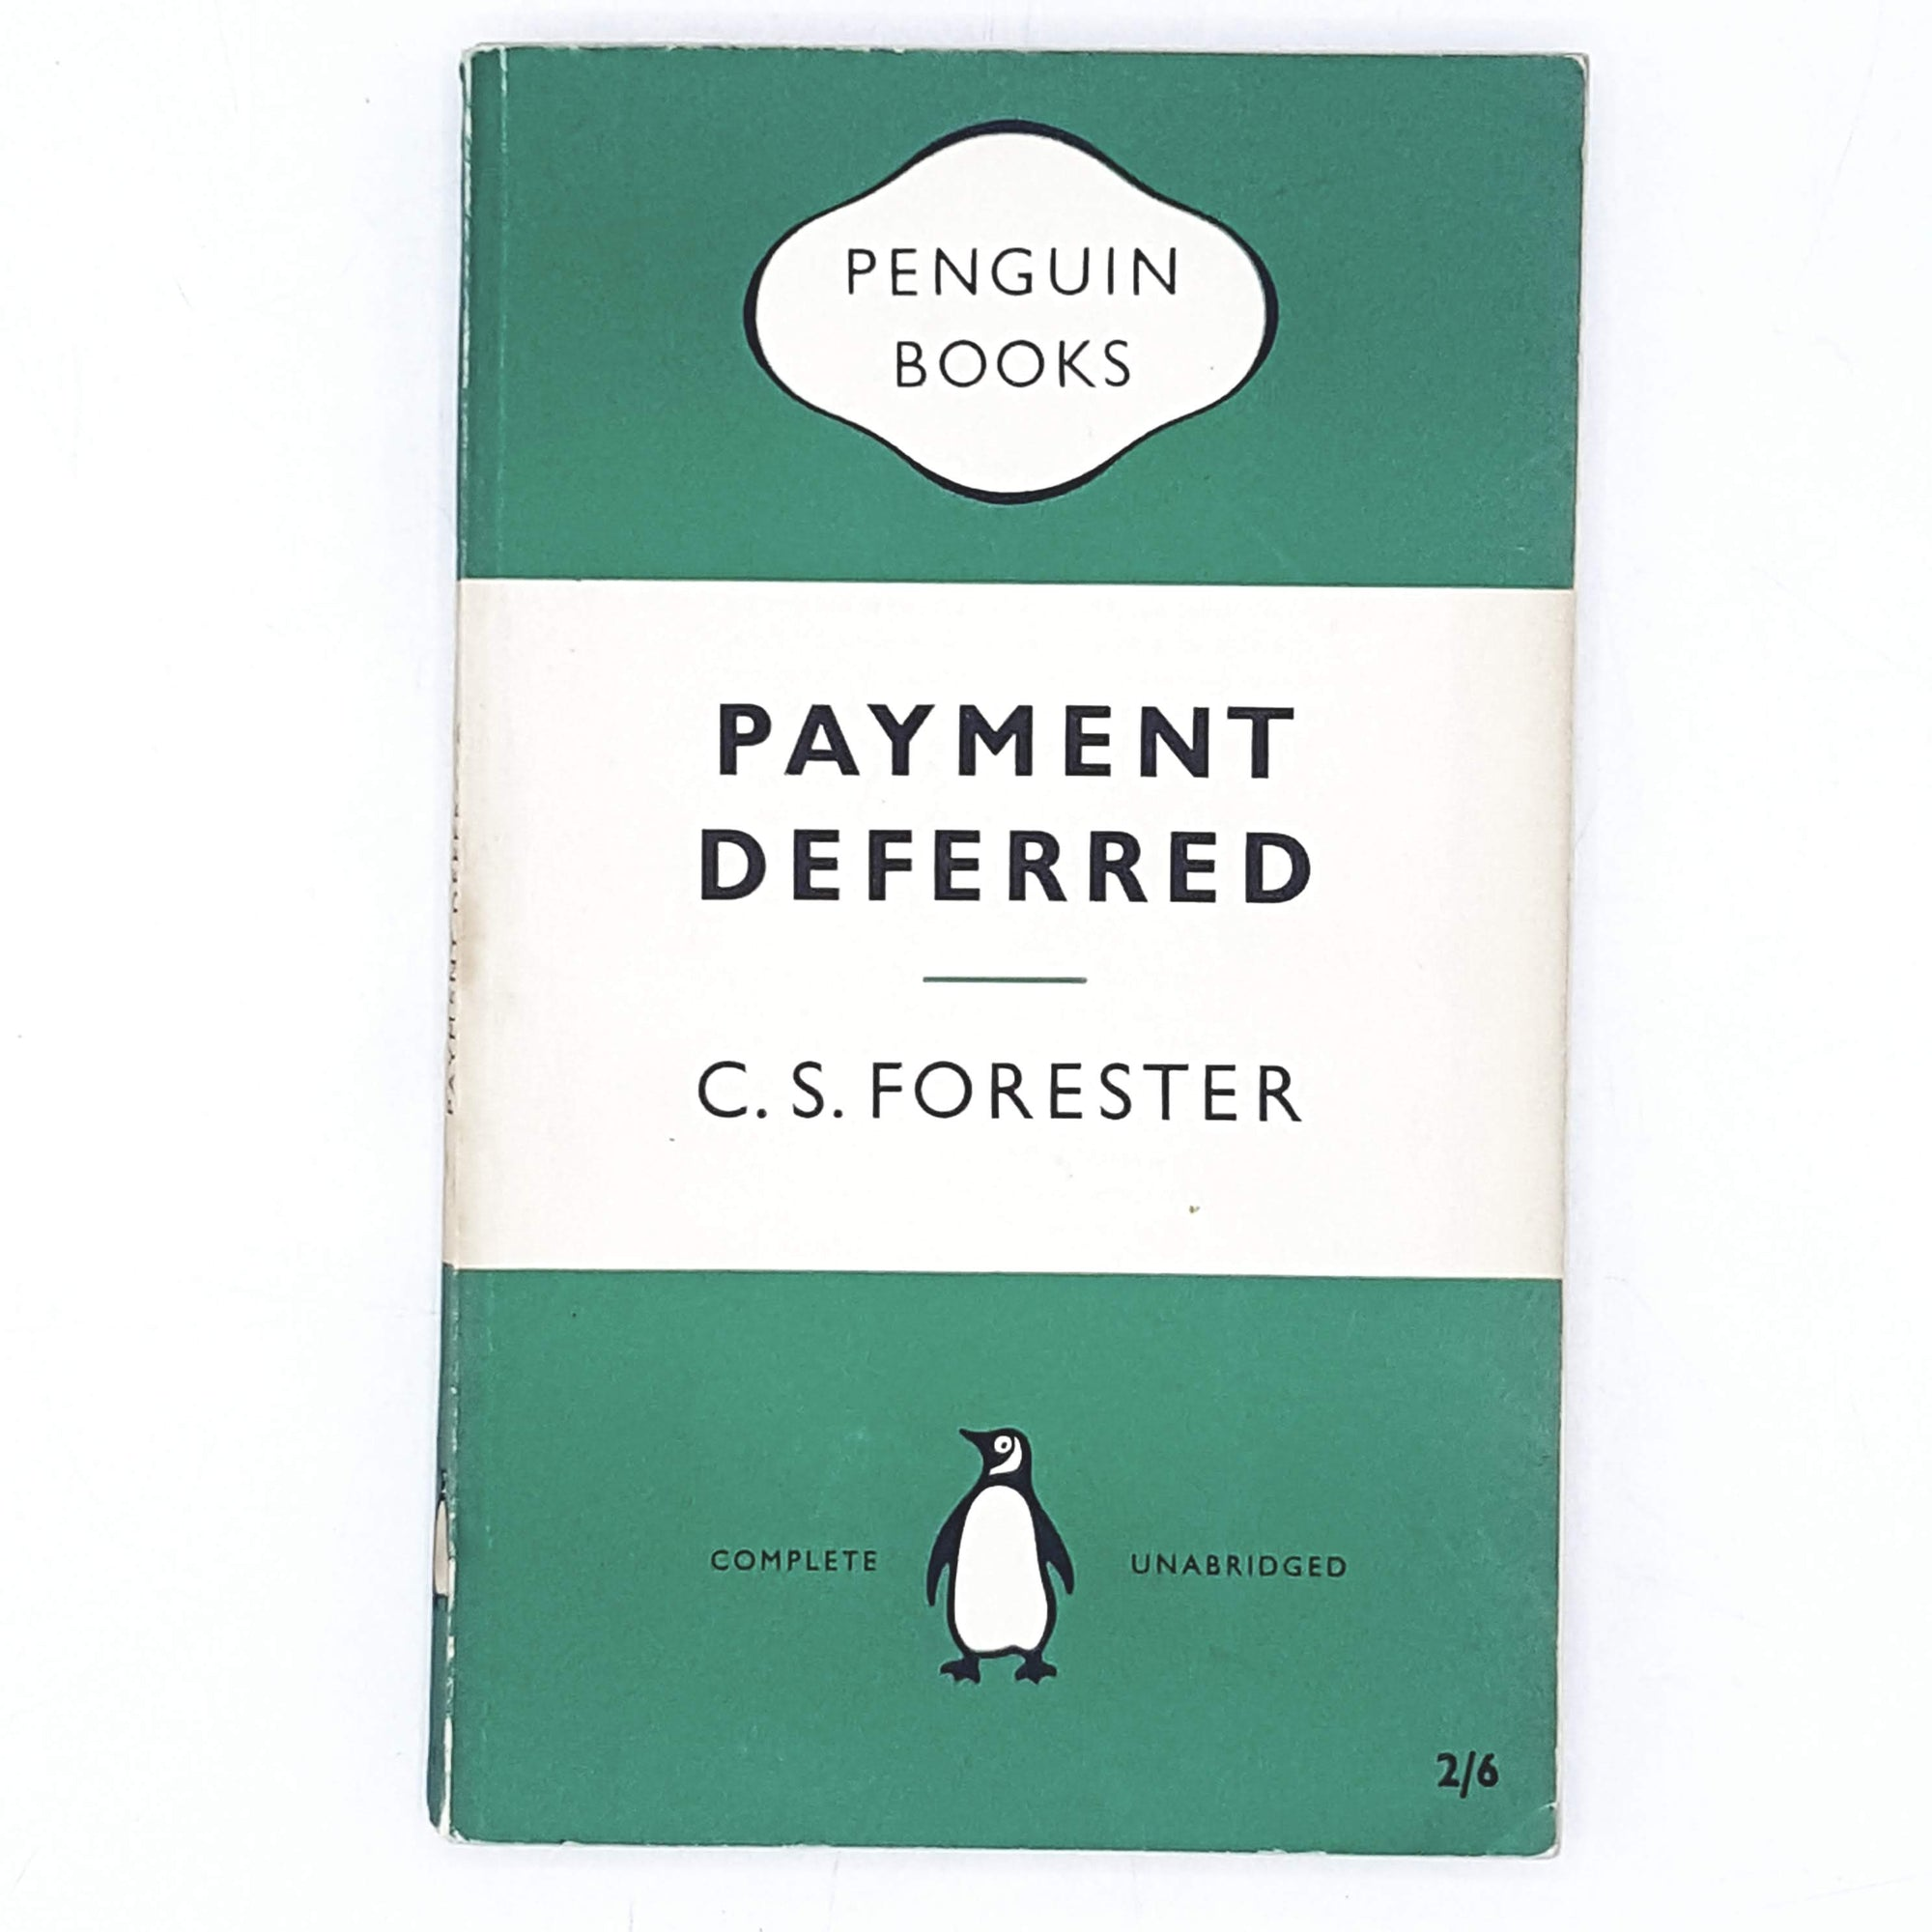 First Edition Penguin Payment Deferred by C. S. Forester 1955